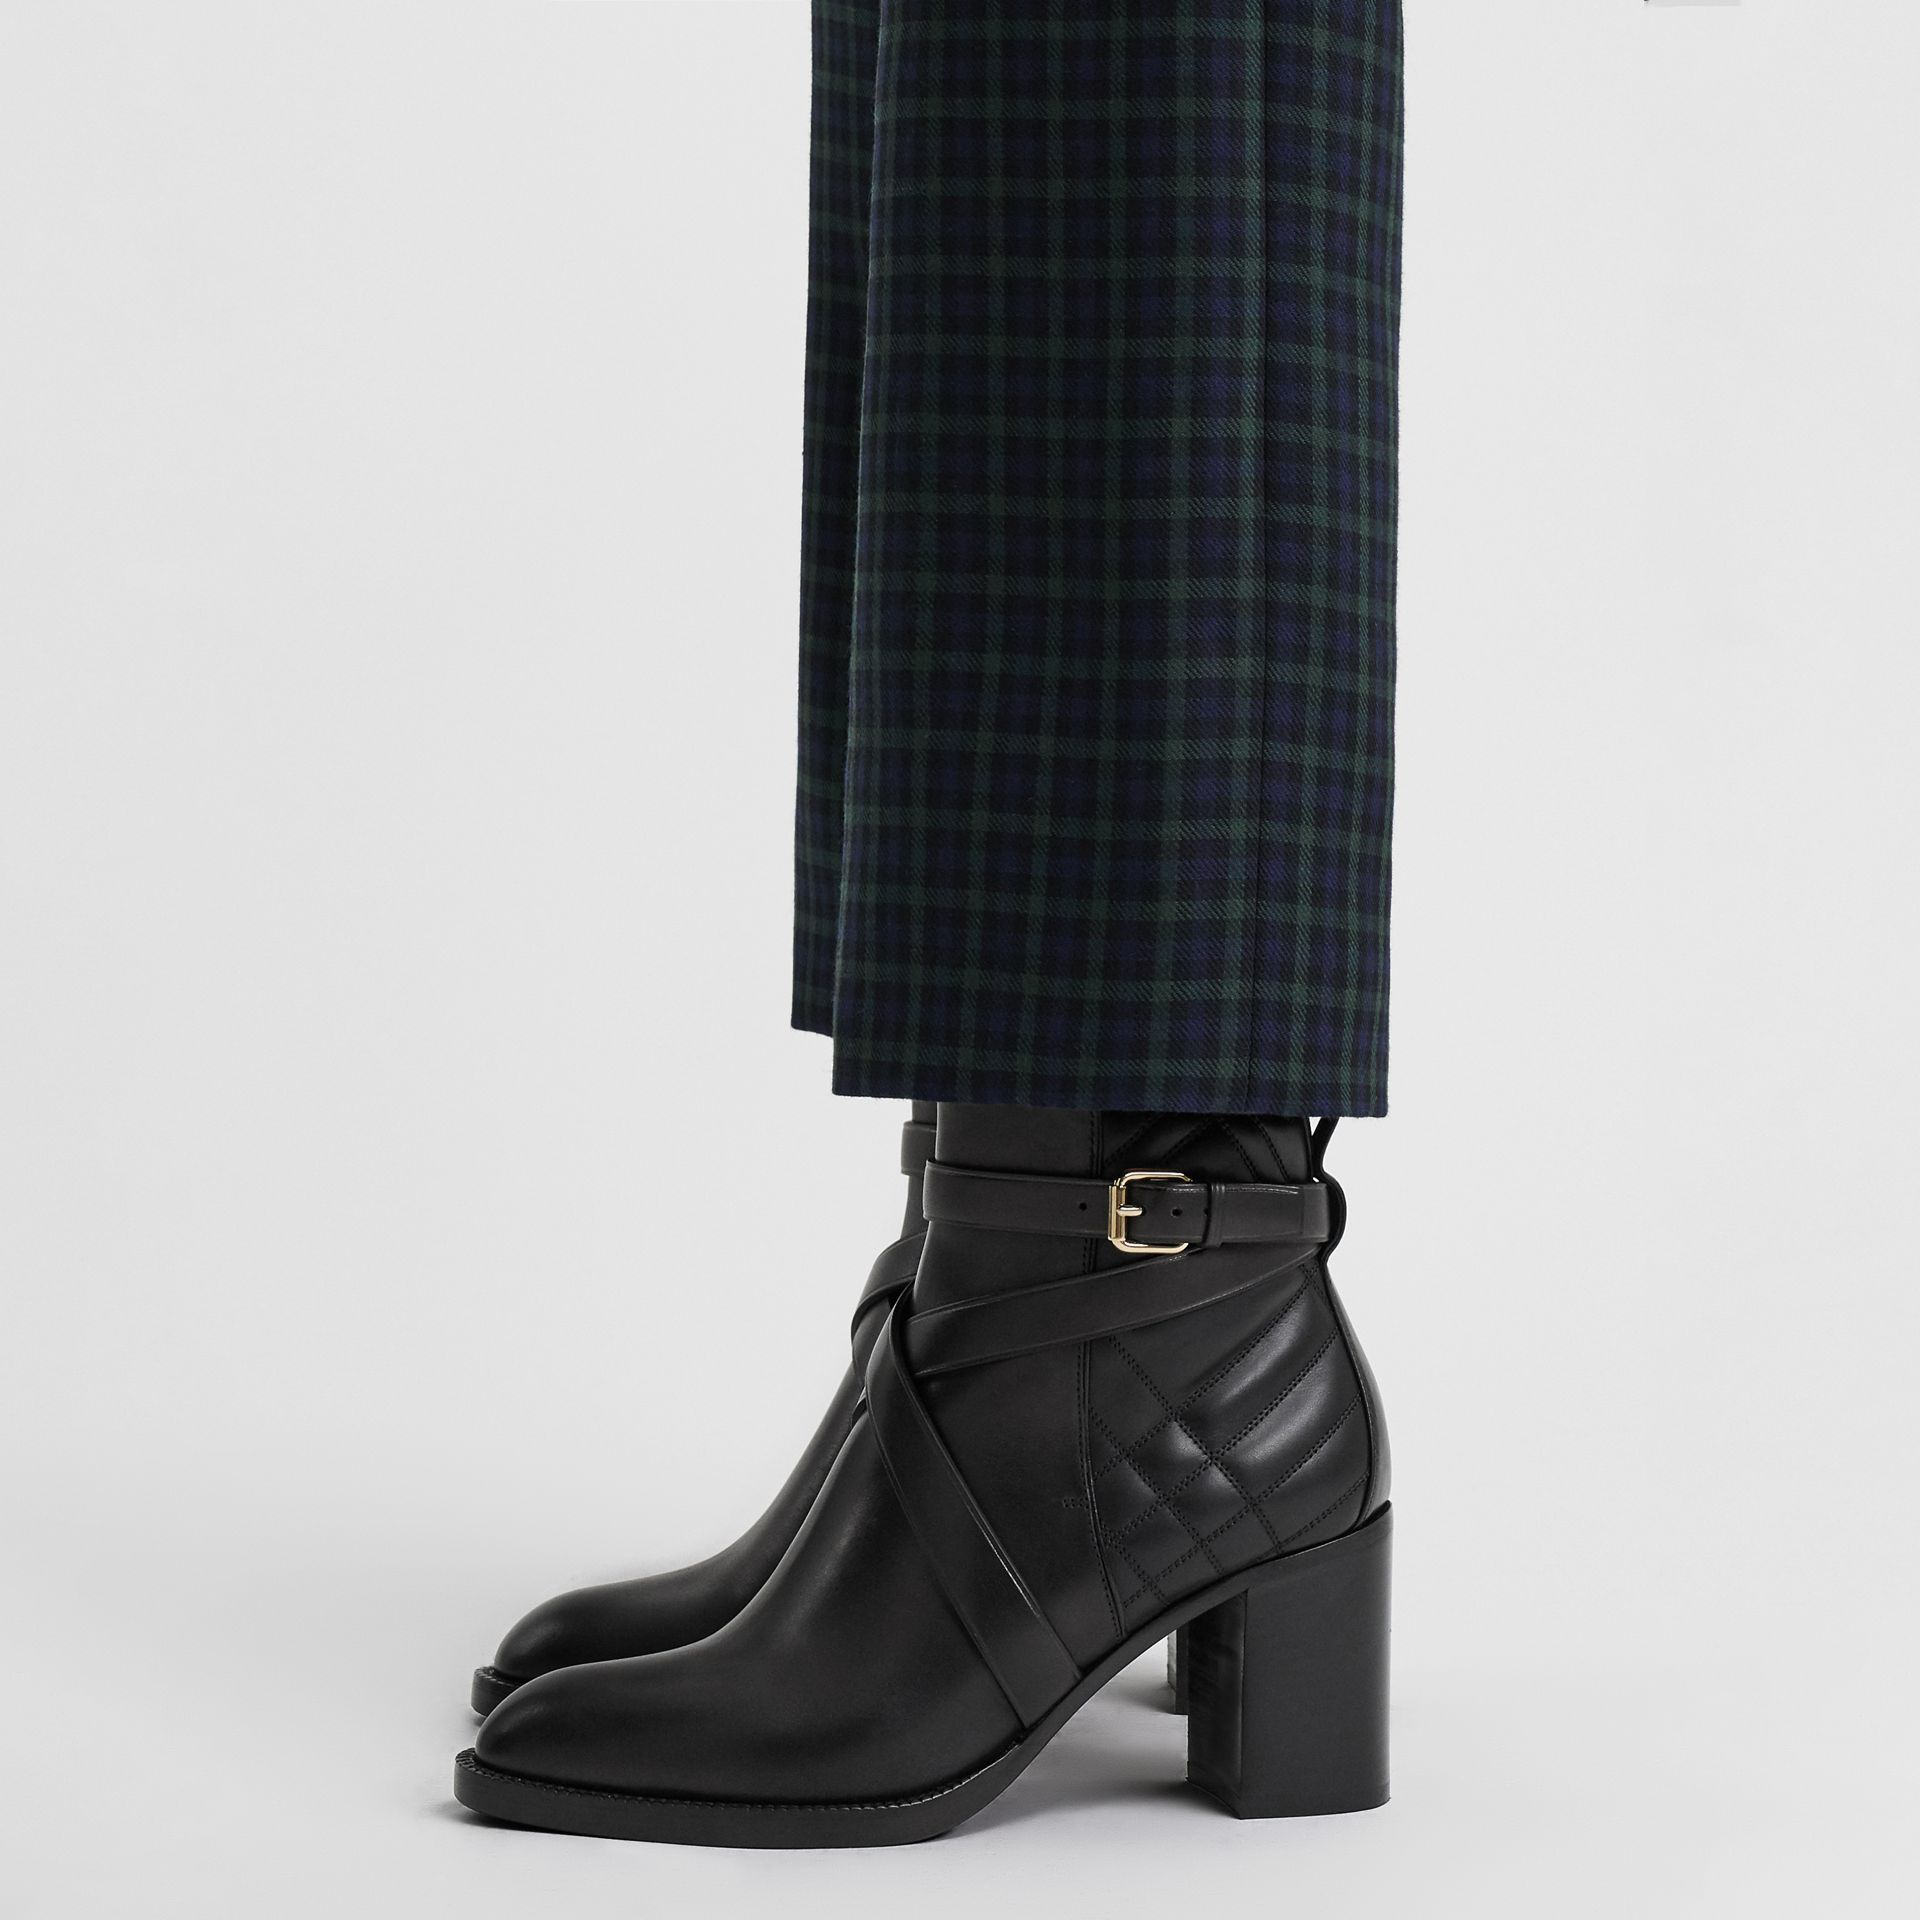 Bottines en cuir matelassé avec sangle (Noir) - Femme | Burberry Canada - photo de la galerie 2